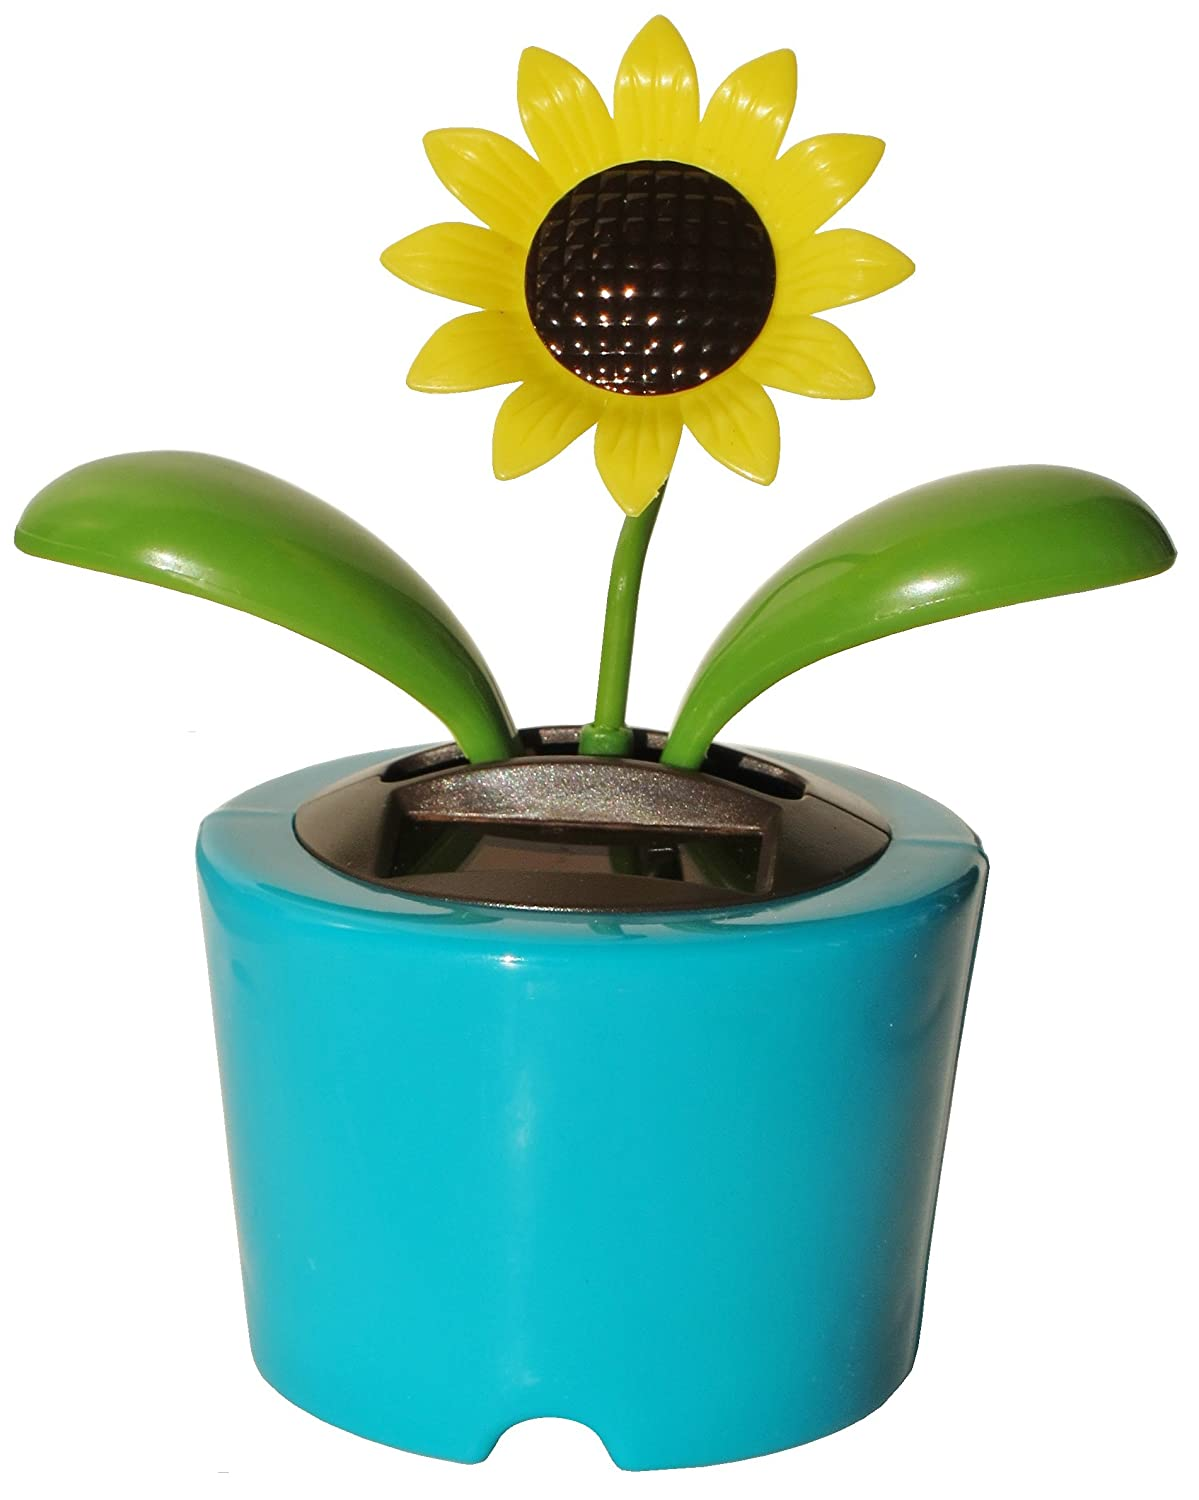 Amazon Solar Powered Plastic Sunflower Flip Flap Dancing